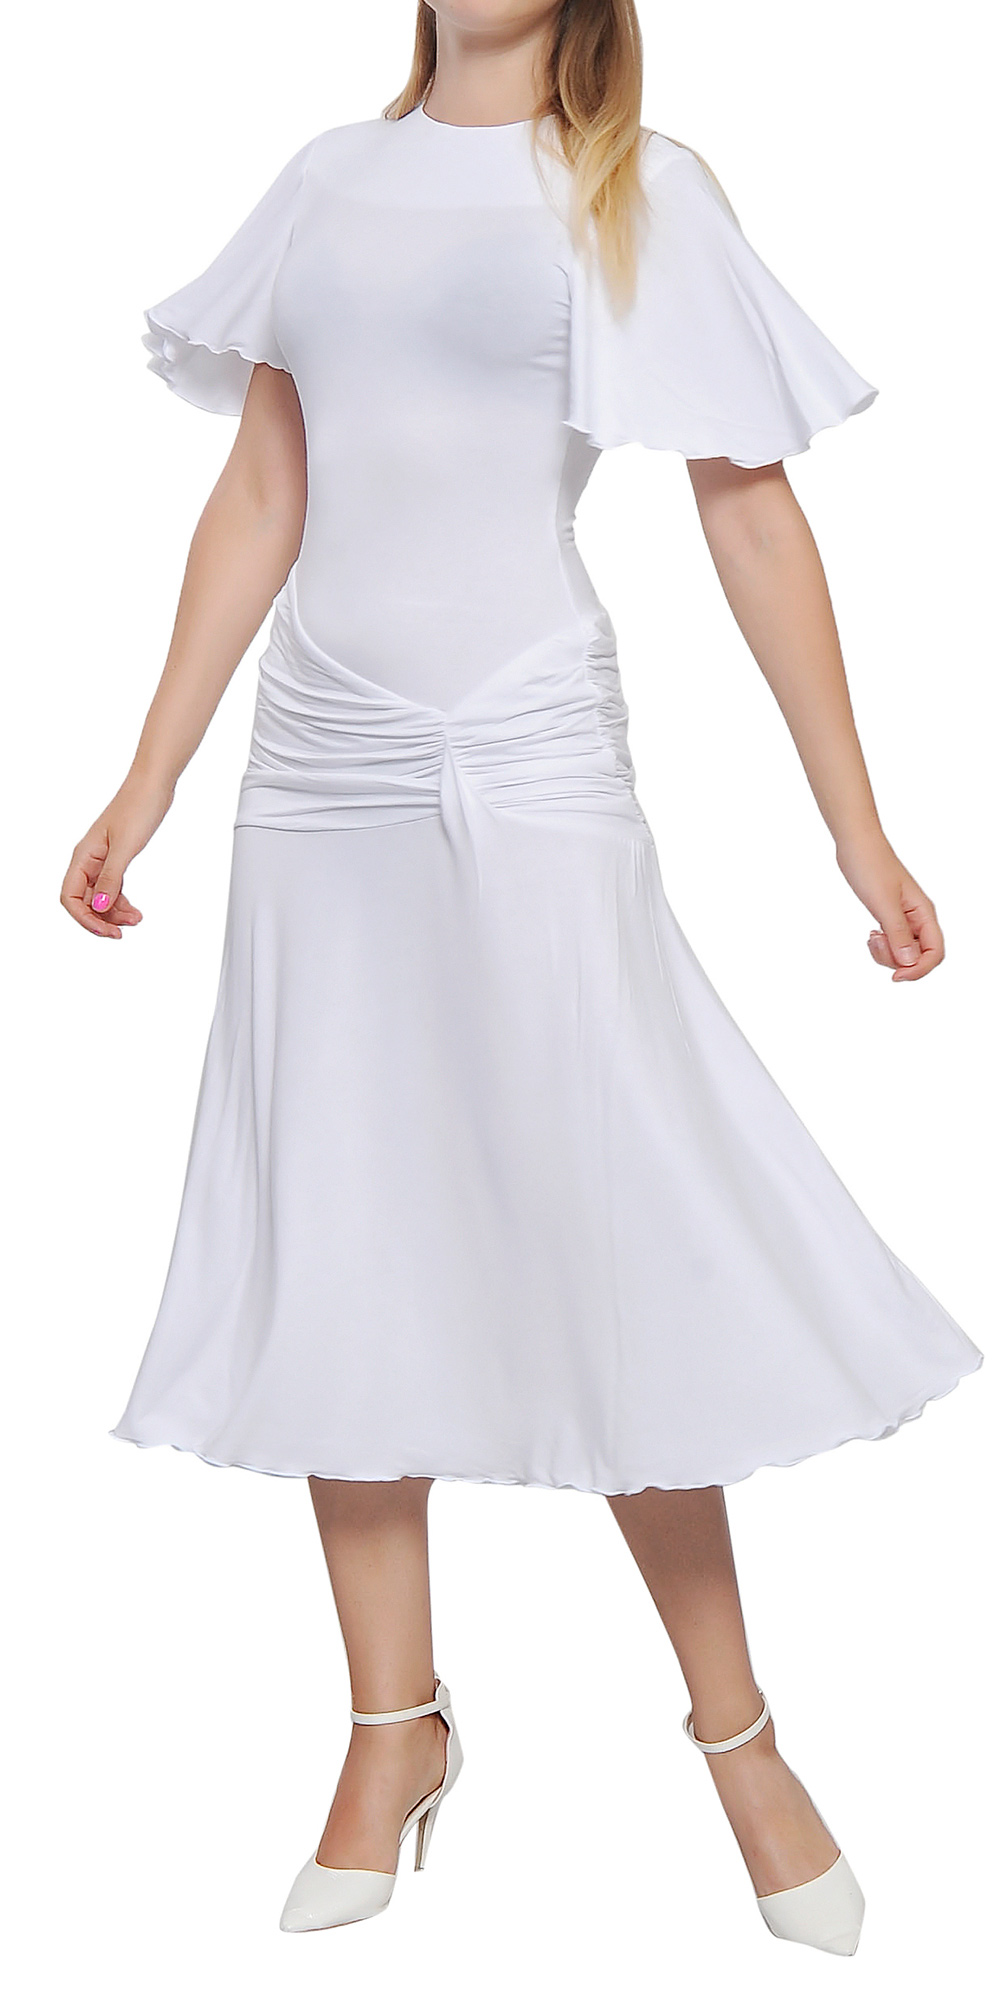 What size is xxl for women's clothing